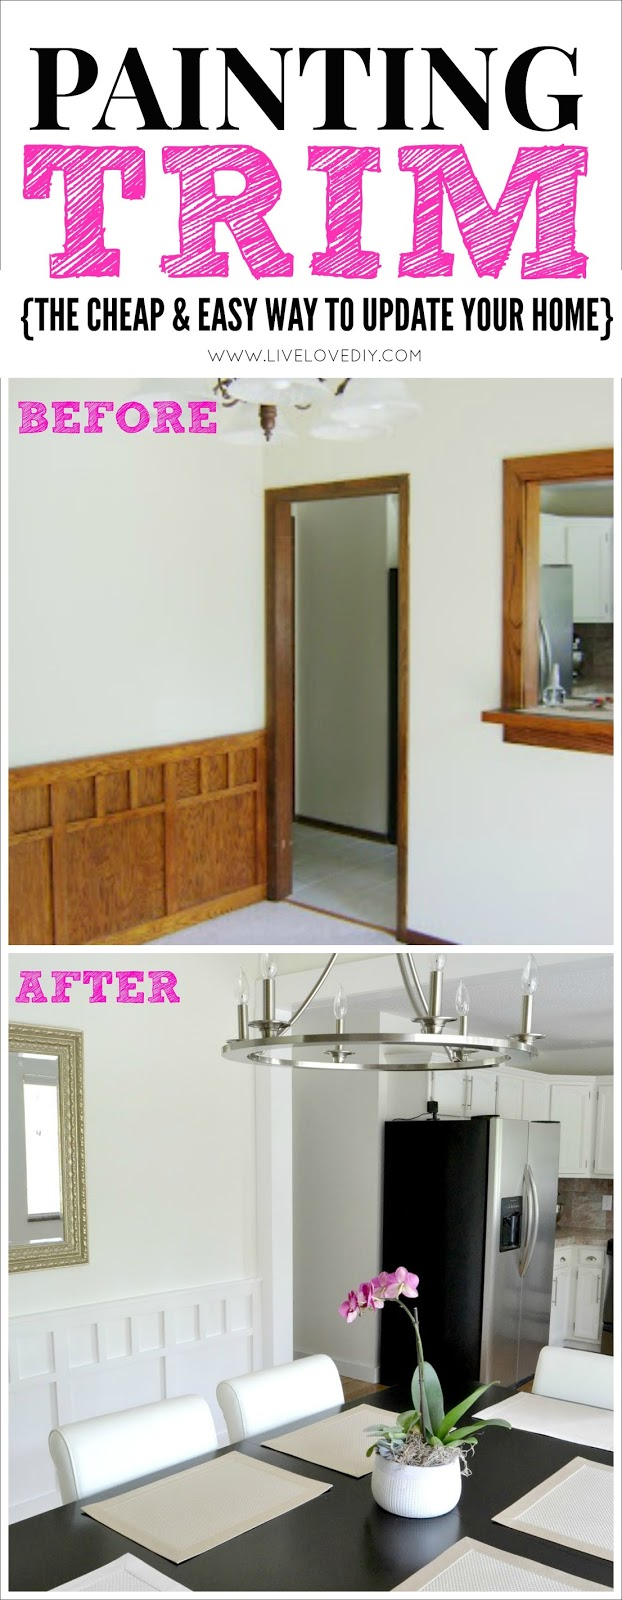 How To Paint Trim: The Cheap And Easy Way To Update Your Home! You